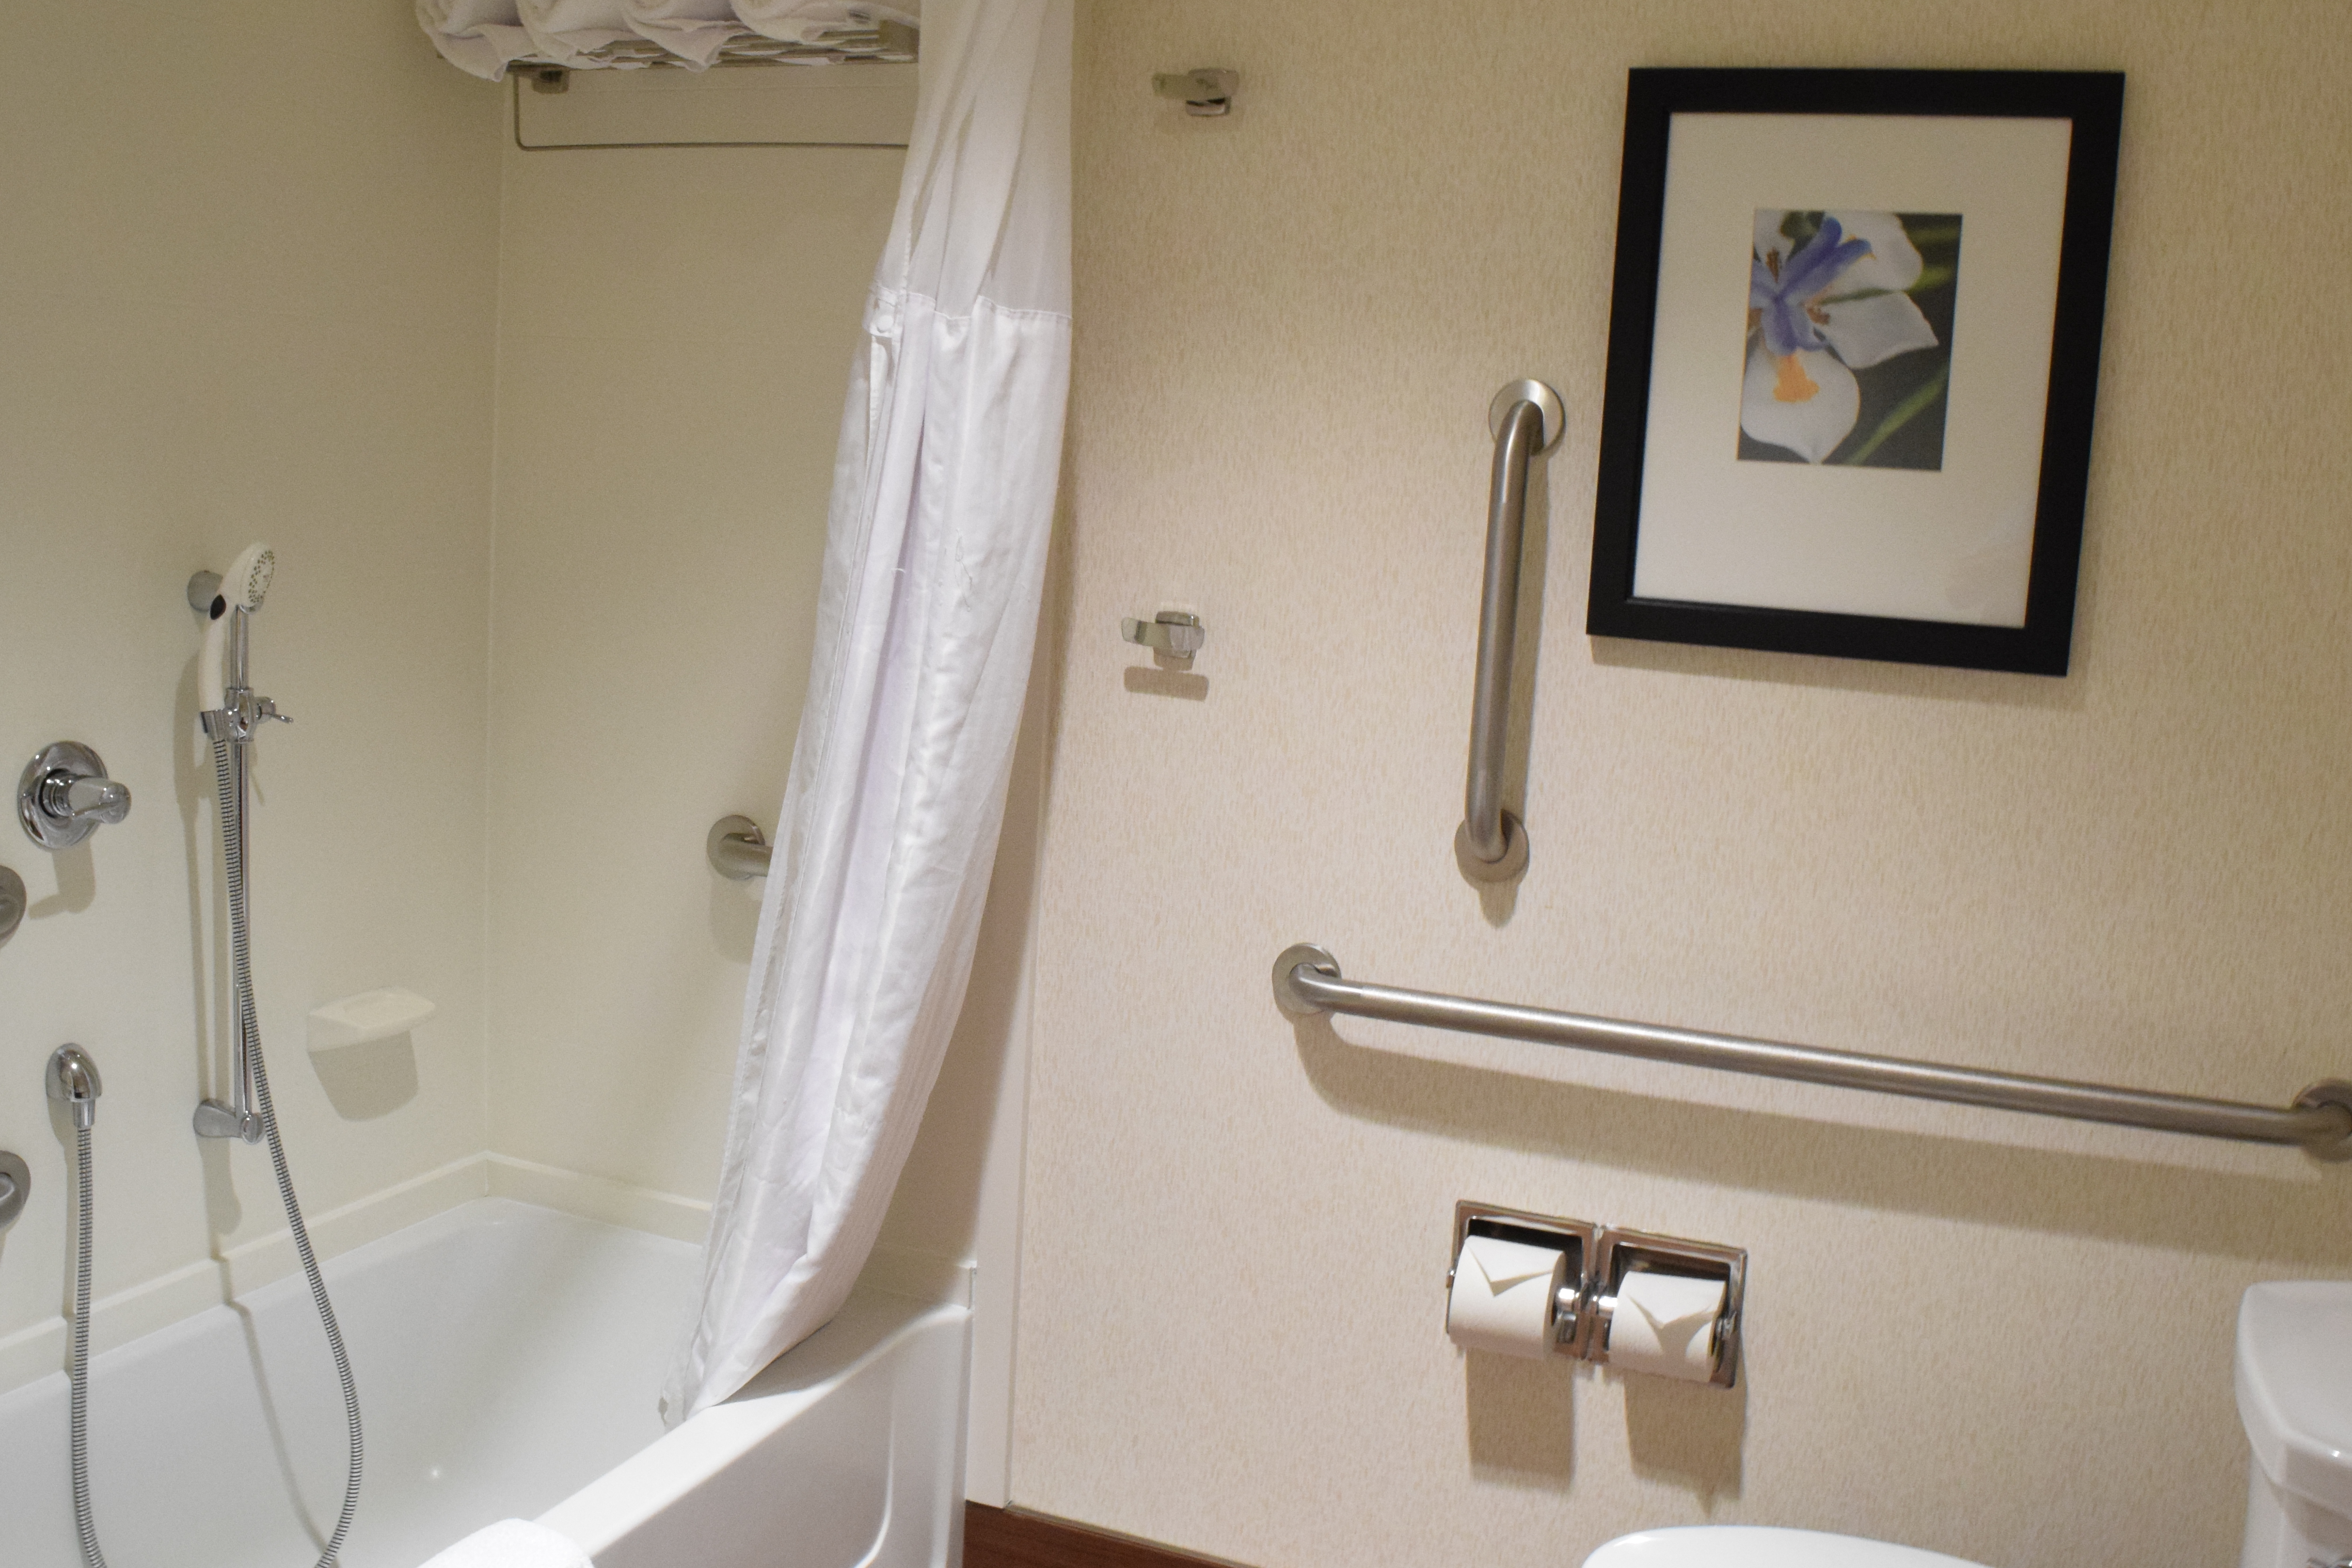 Accessible King Suite Bathroom featuring bathtub and railings